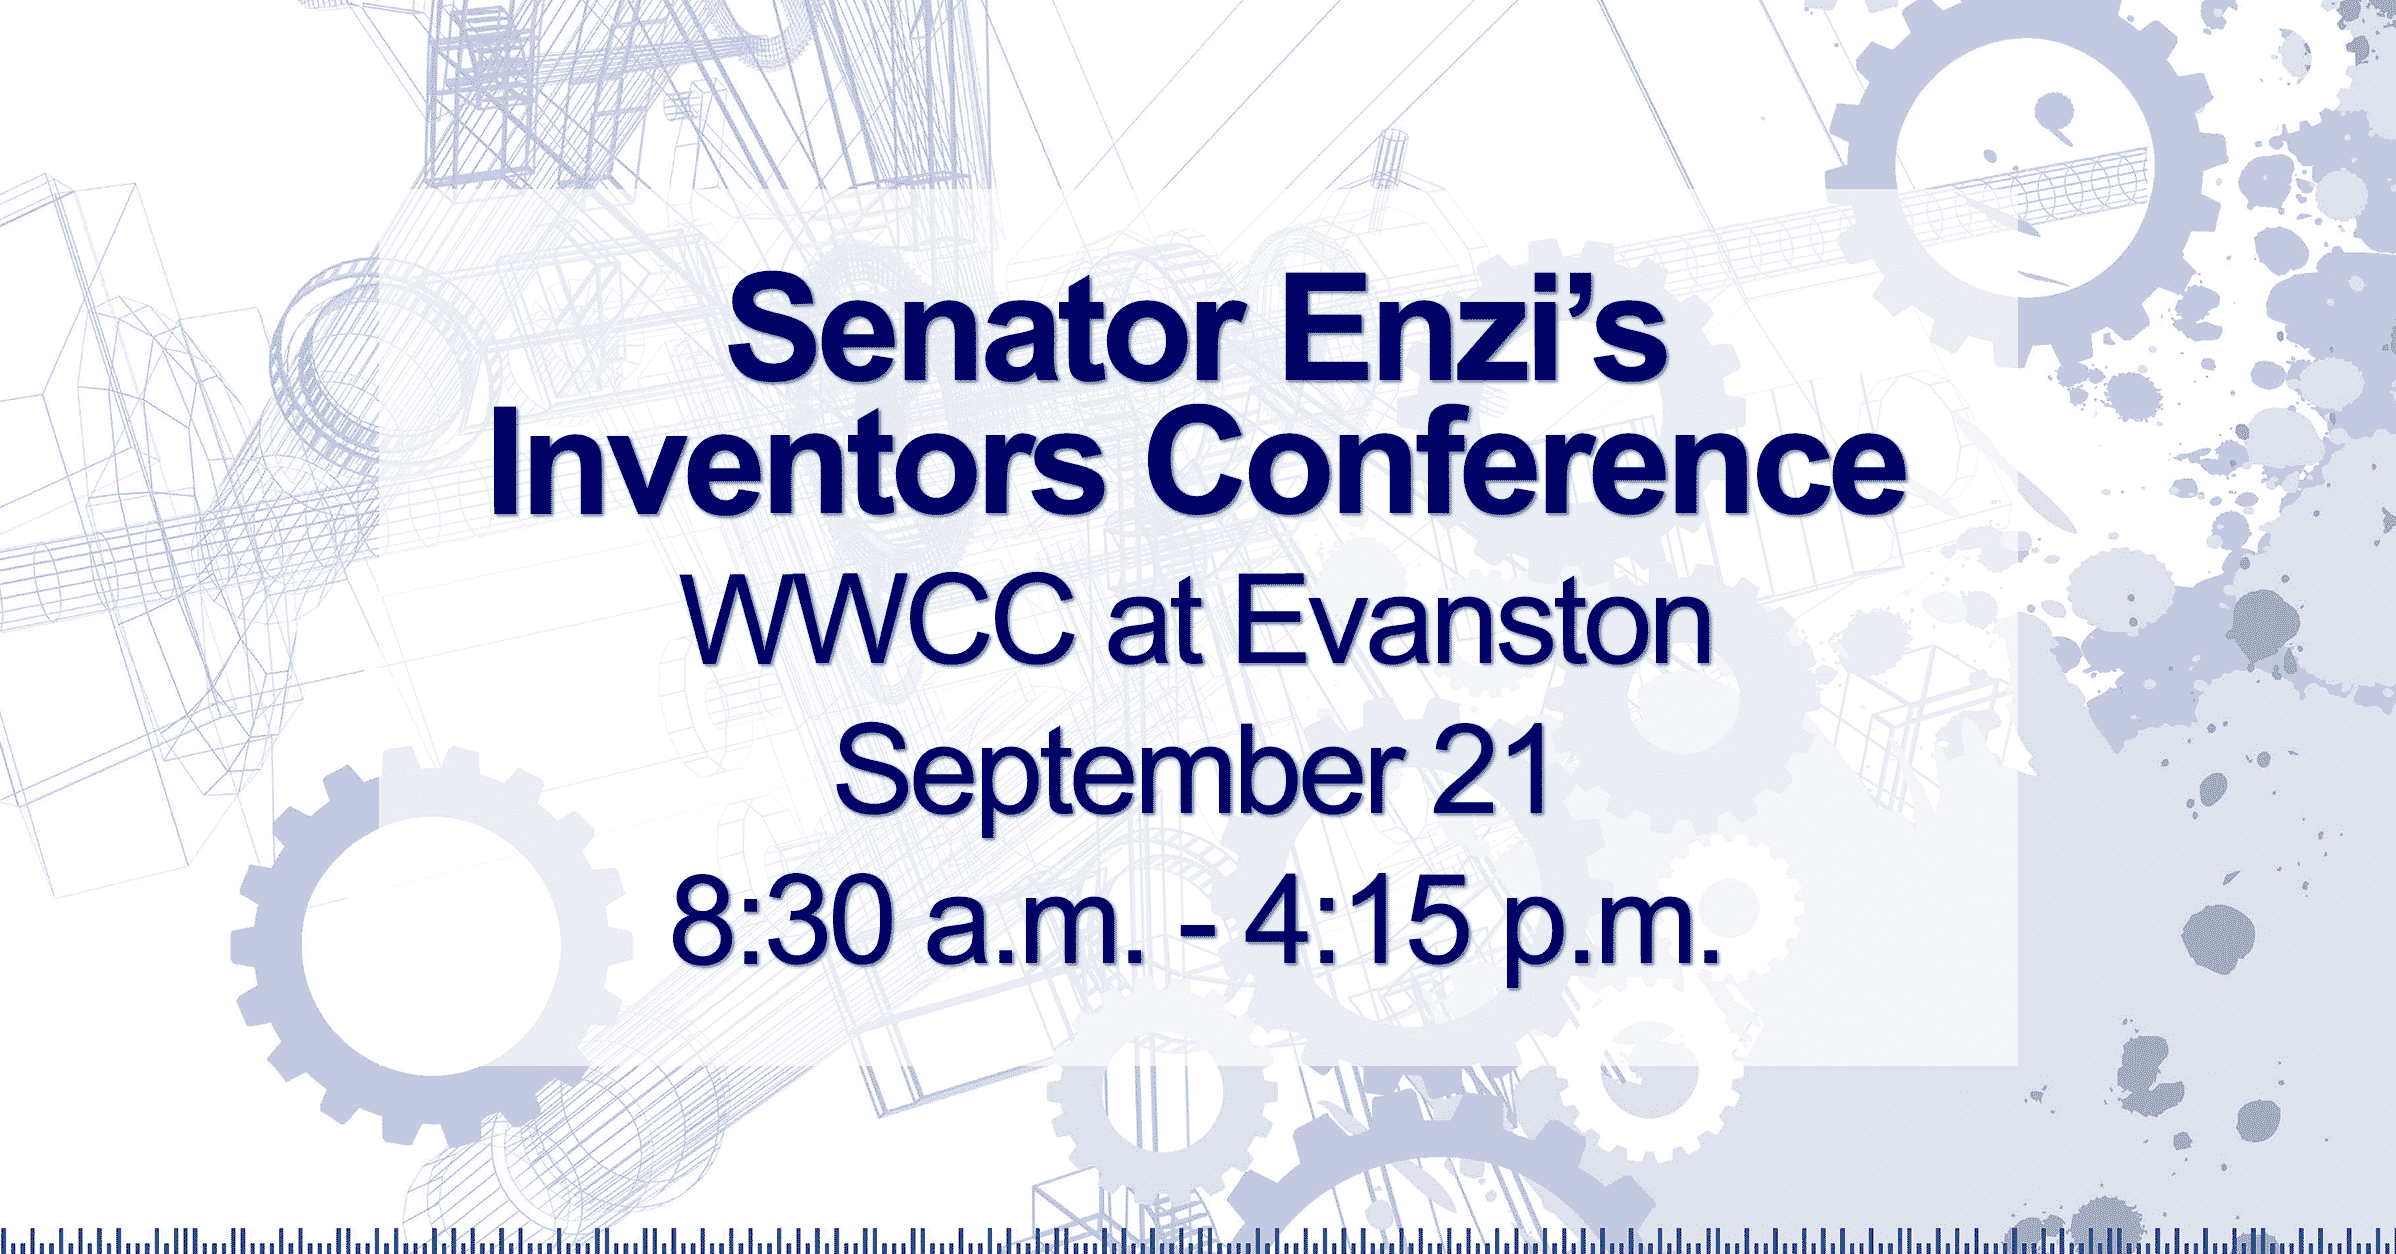 Inventors Conference Registration Now Open